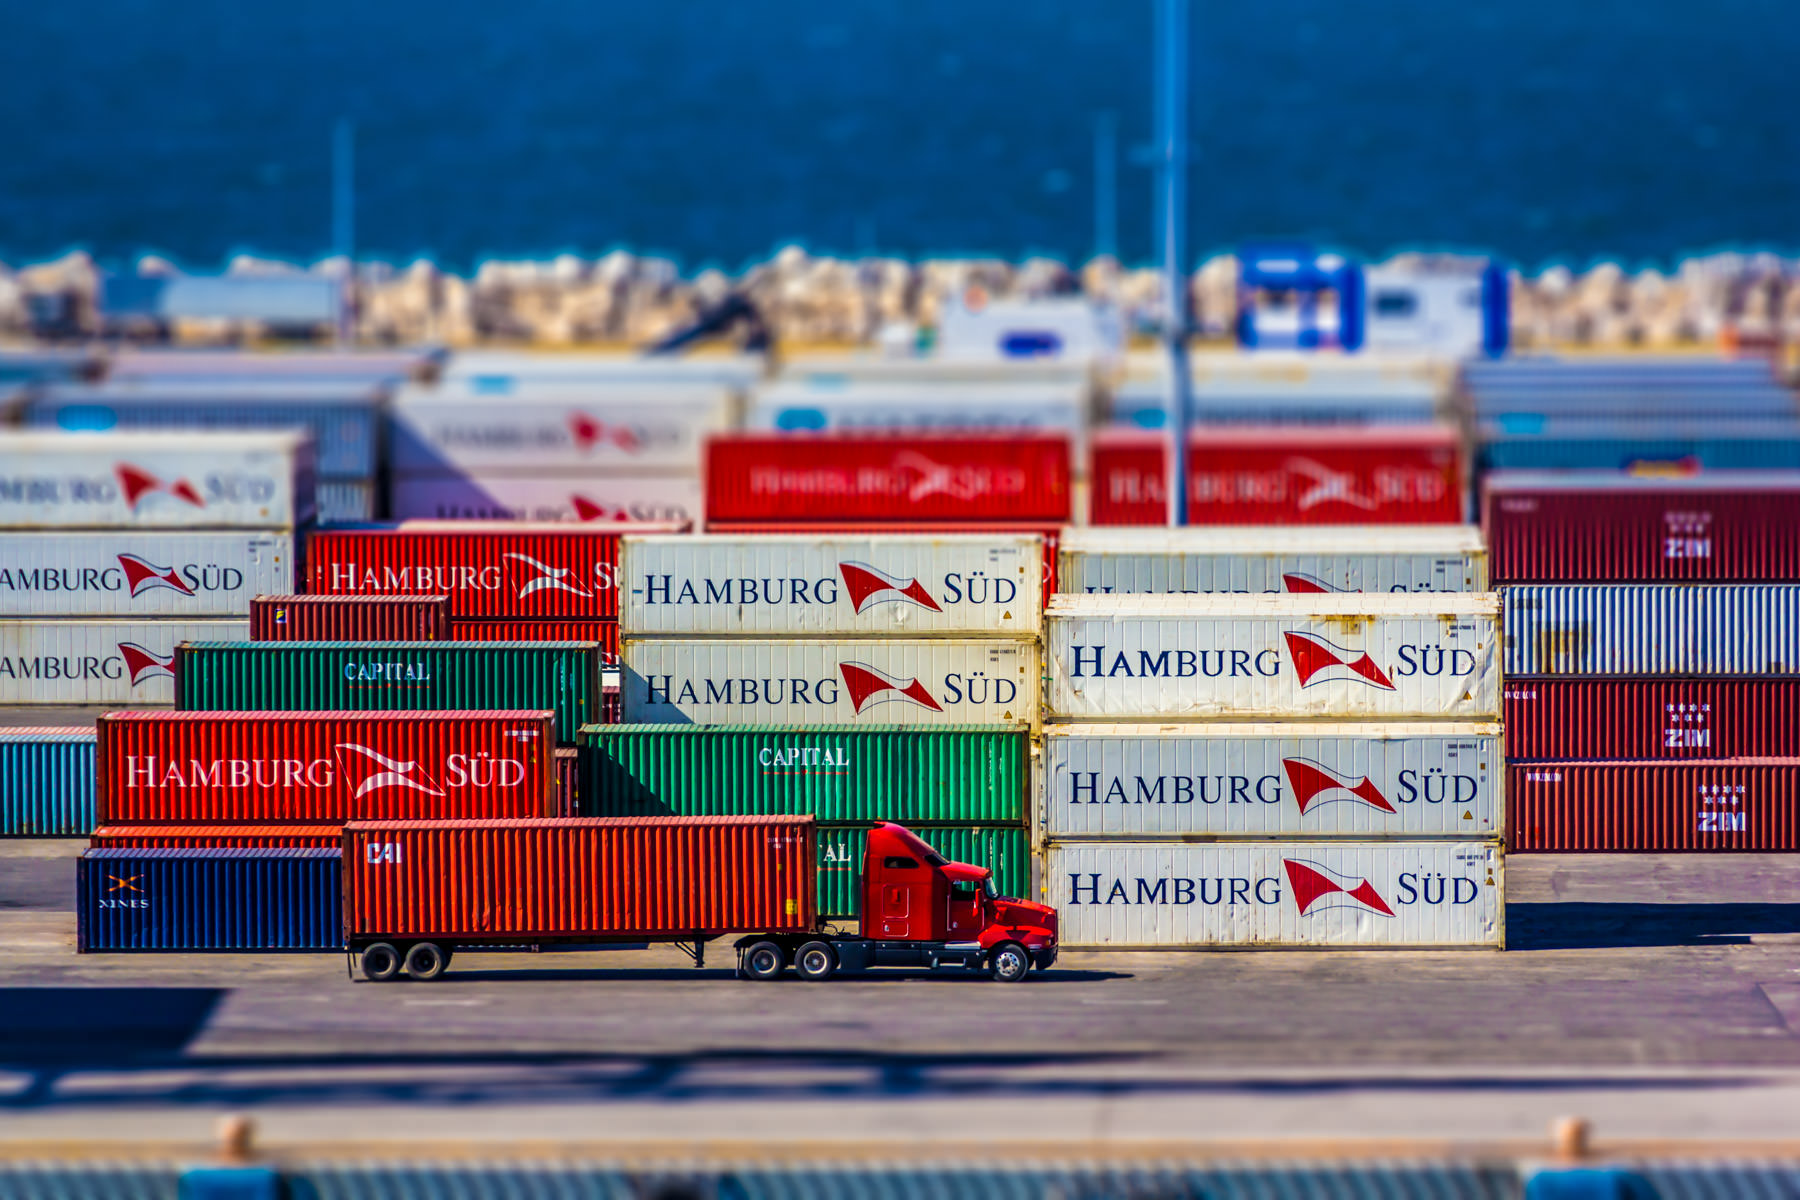 Containers stacked in a cargo terminal in Progreso de Mérida, Yucatán, Mexico.